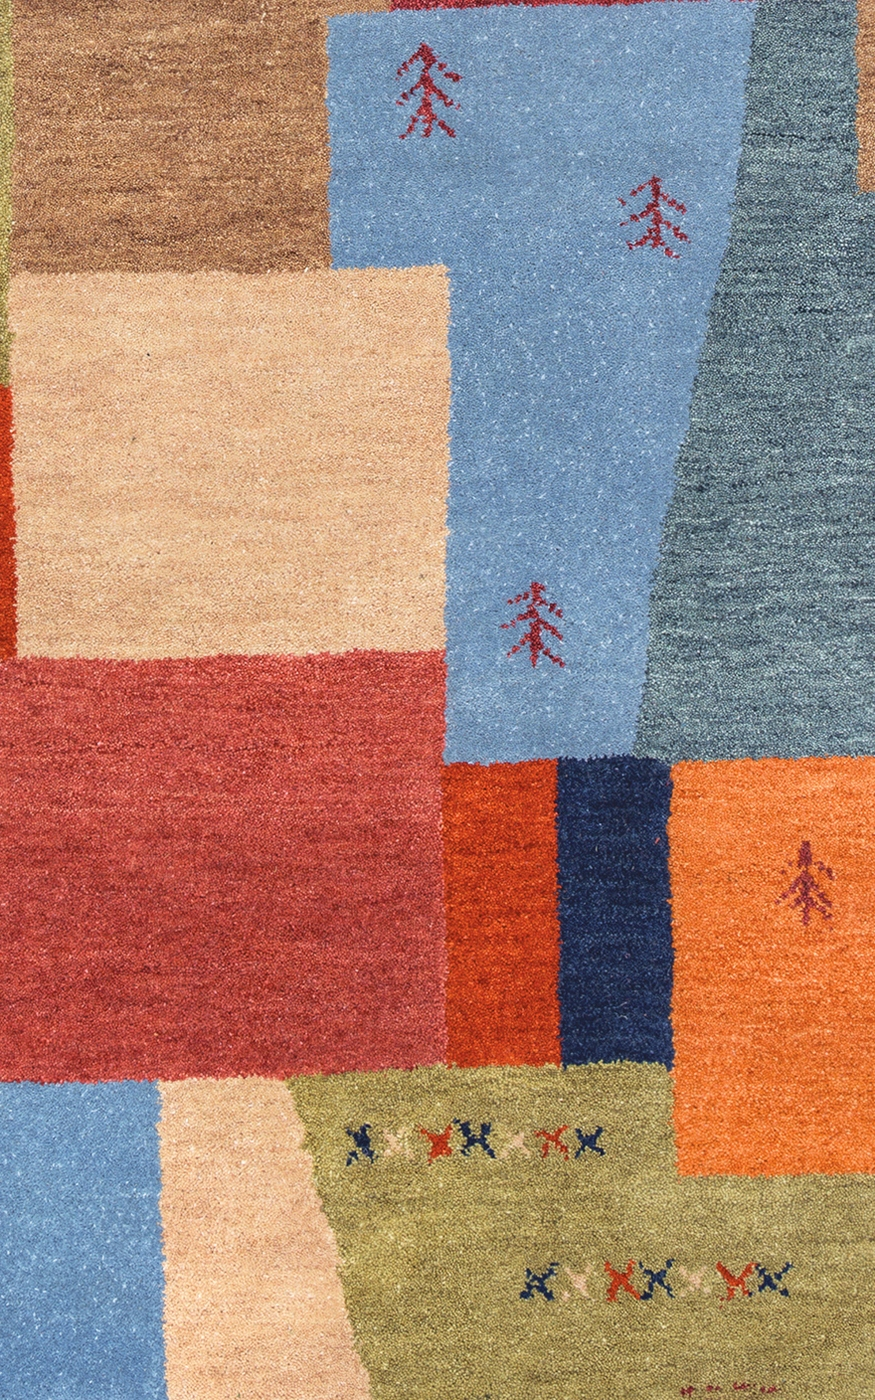 mojave abstract block detail wool area rug in blue red tan green 8 39 x 10 39. Black Bedroom Furniture Sets. Home Design Ideas